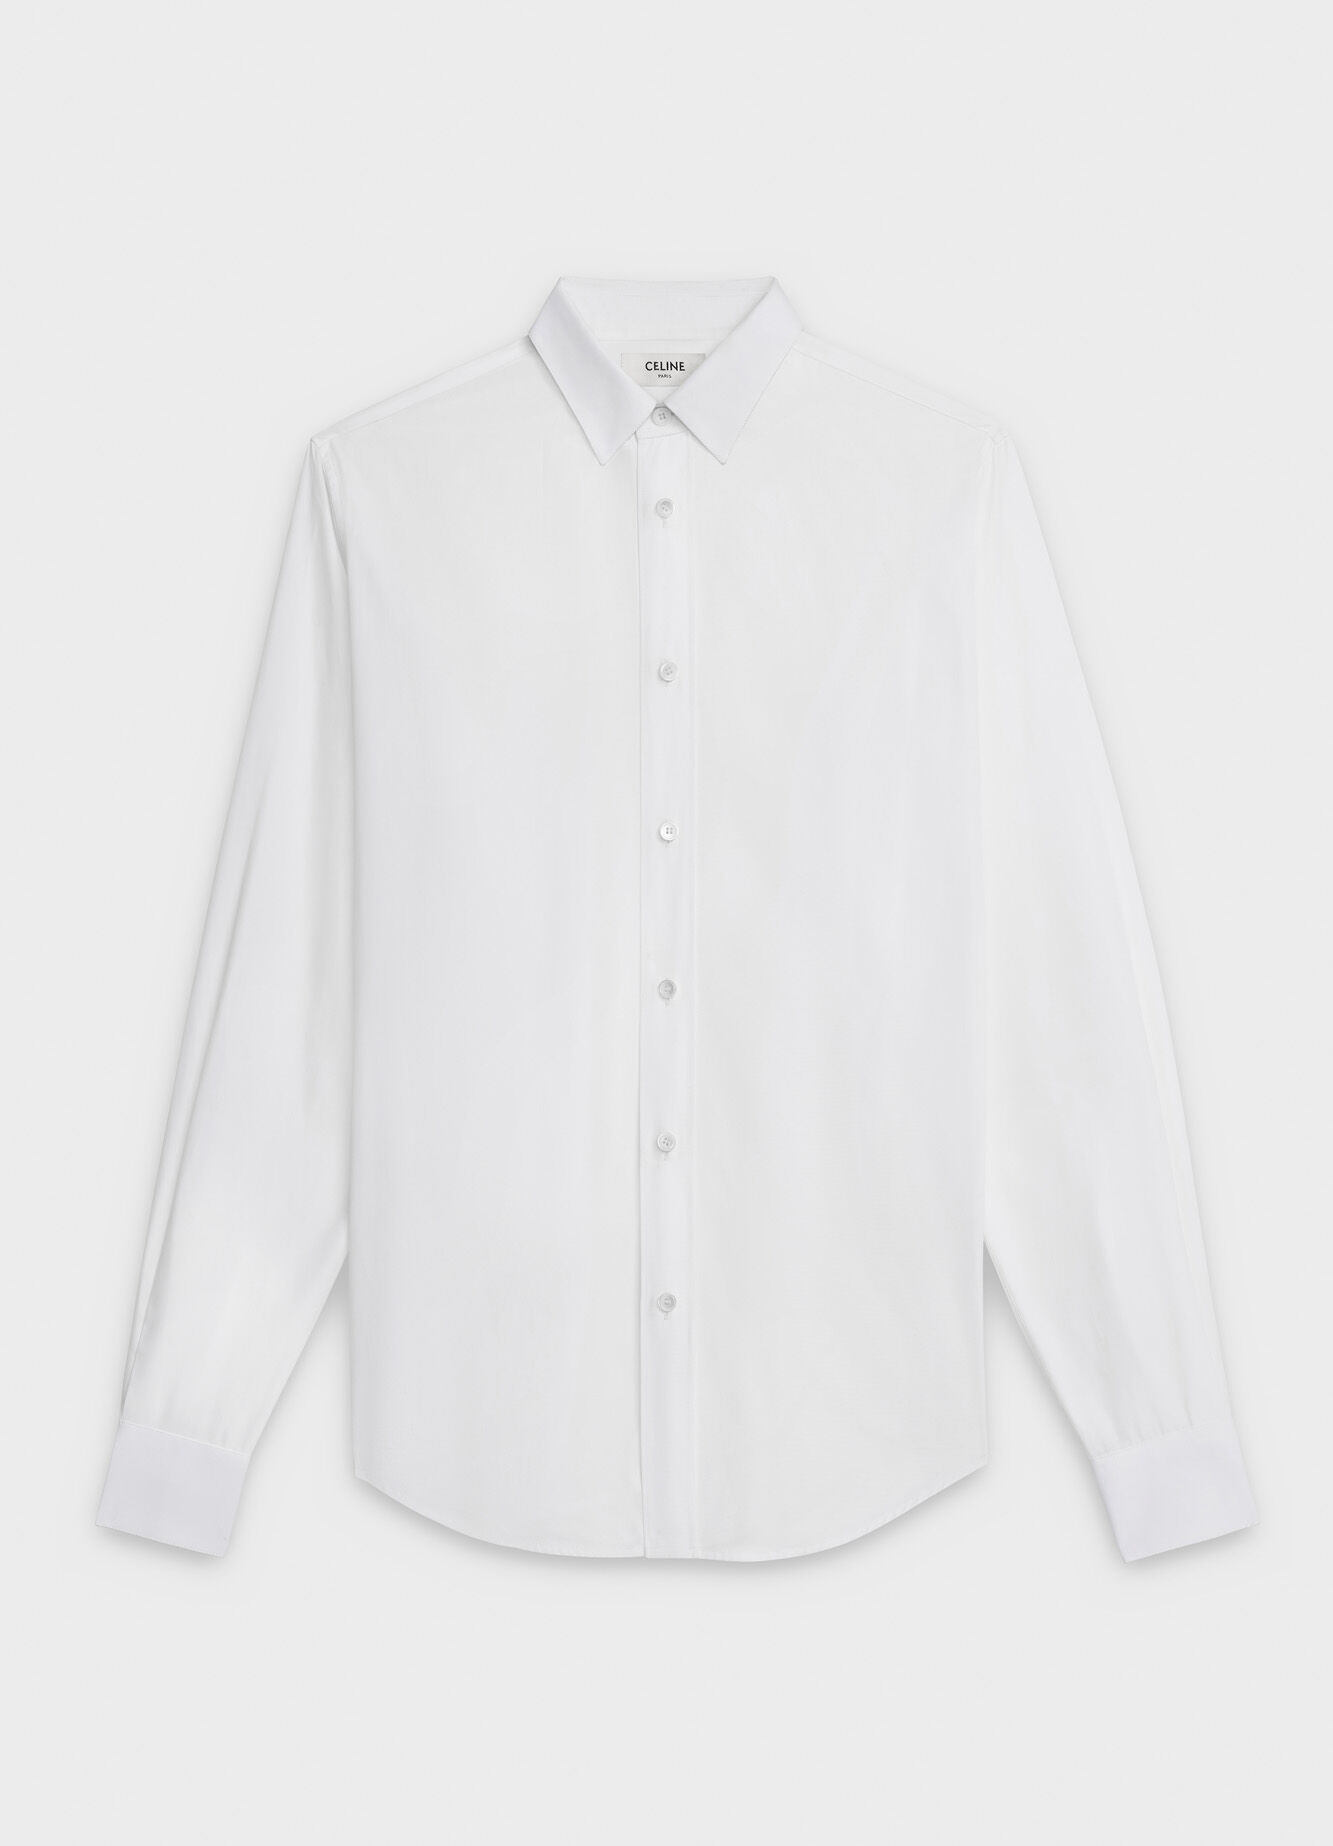 CELINE CLASSIC SHIRT IN COTTON POPLIN WITH MODERN COLLAR